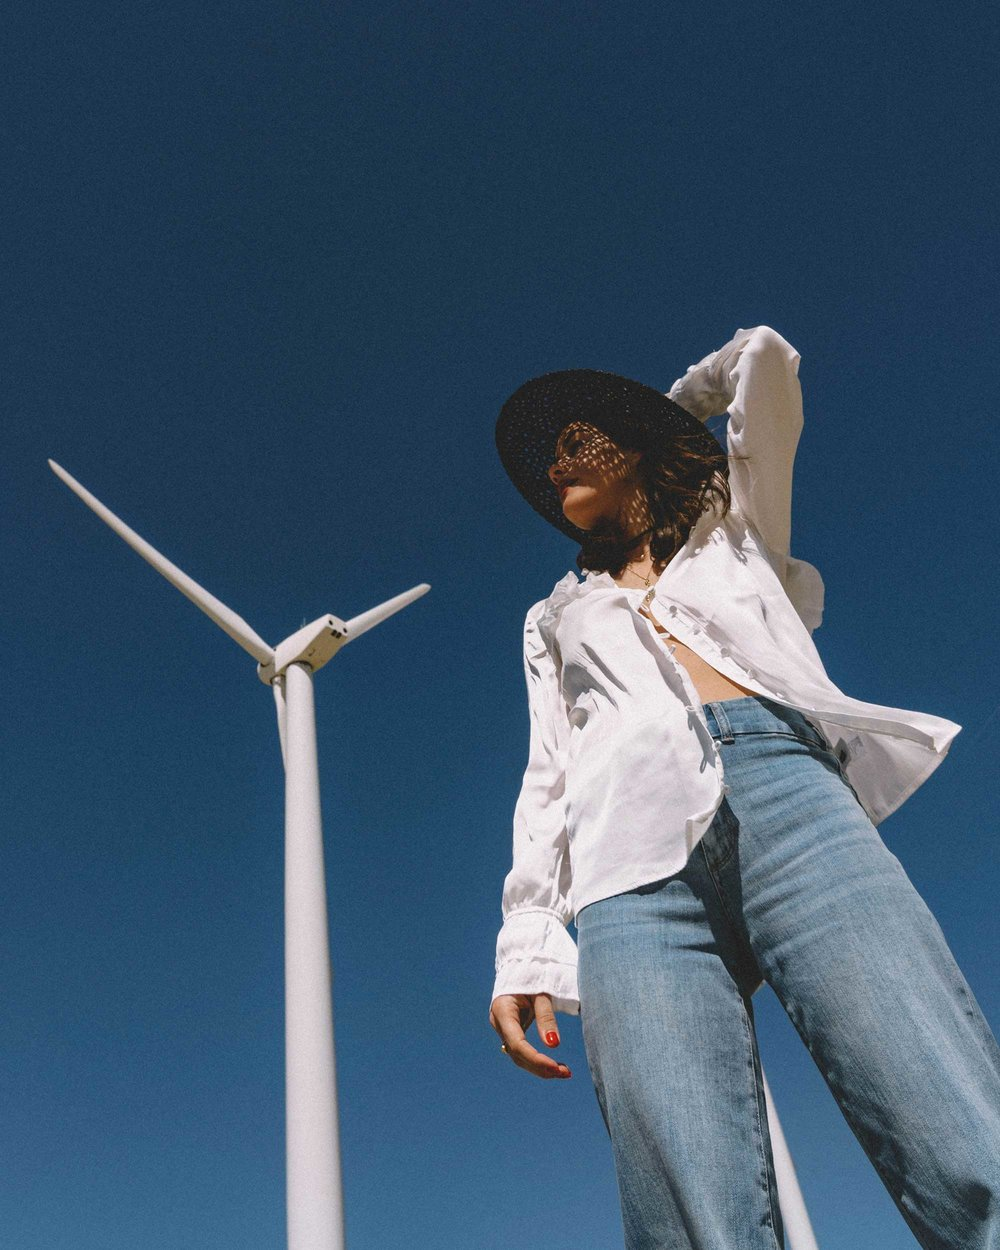 Sarah Butler of Sarah Styles Seattle wears Paige Anguilla Long-Sleeve Blouse with Layered Ruffle Trim, Paige Sutton High Waist Wide Leg Jeans, and Lack of Color Women's Sunnydip Noir Hat in Palm Springs for Coachella Festival Outfit   @sarahchristine5.jpg